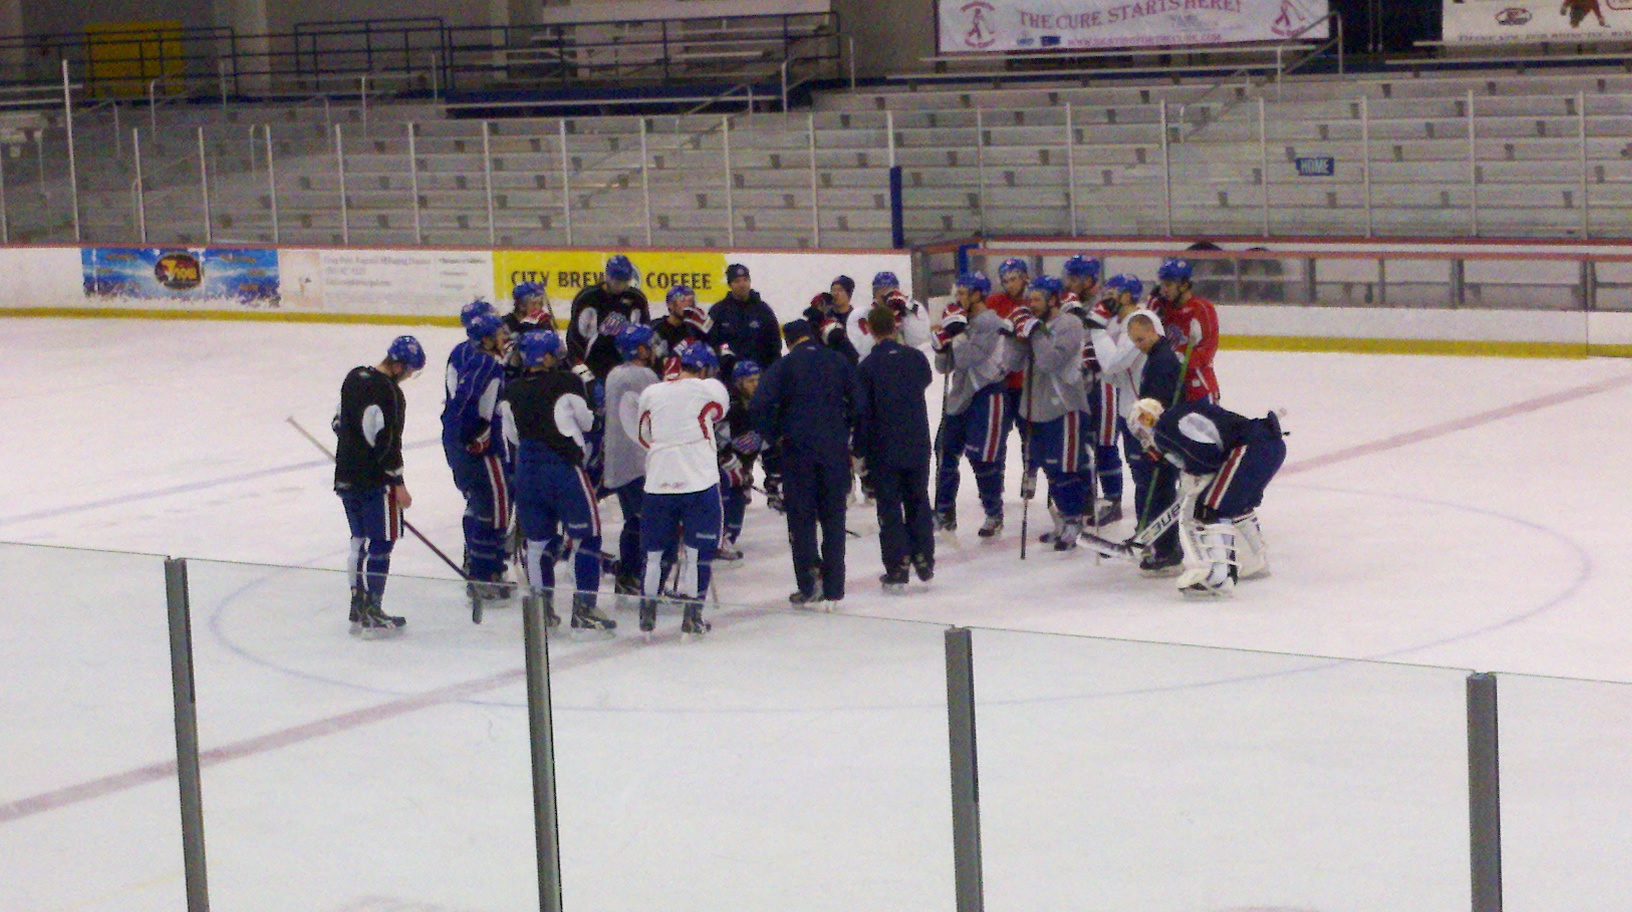 Persson to Play, Brennan out and the Amerks Are Always Looking for Players